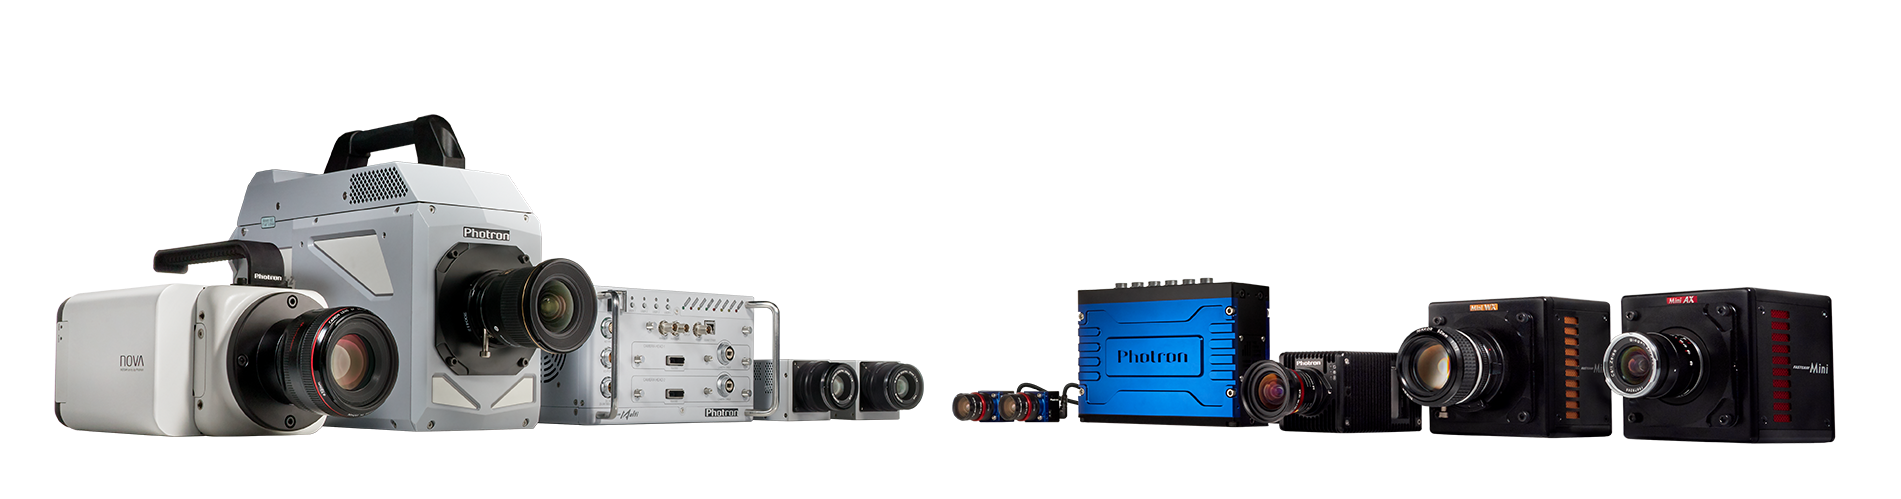 Fast Cameras by Photron